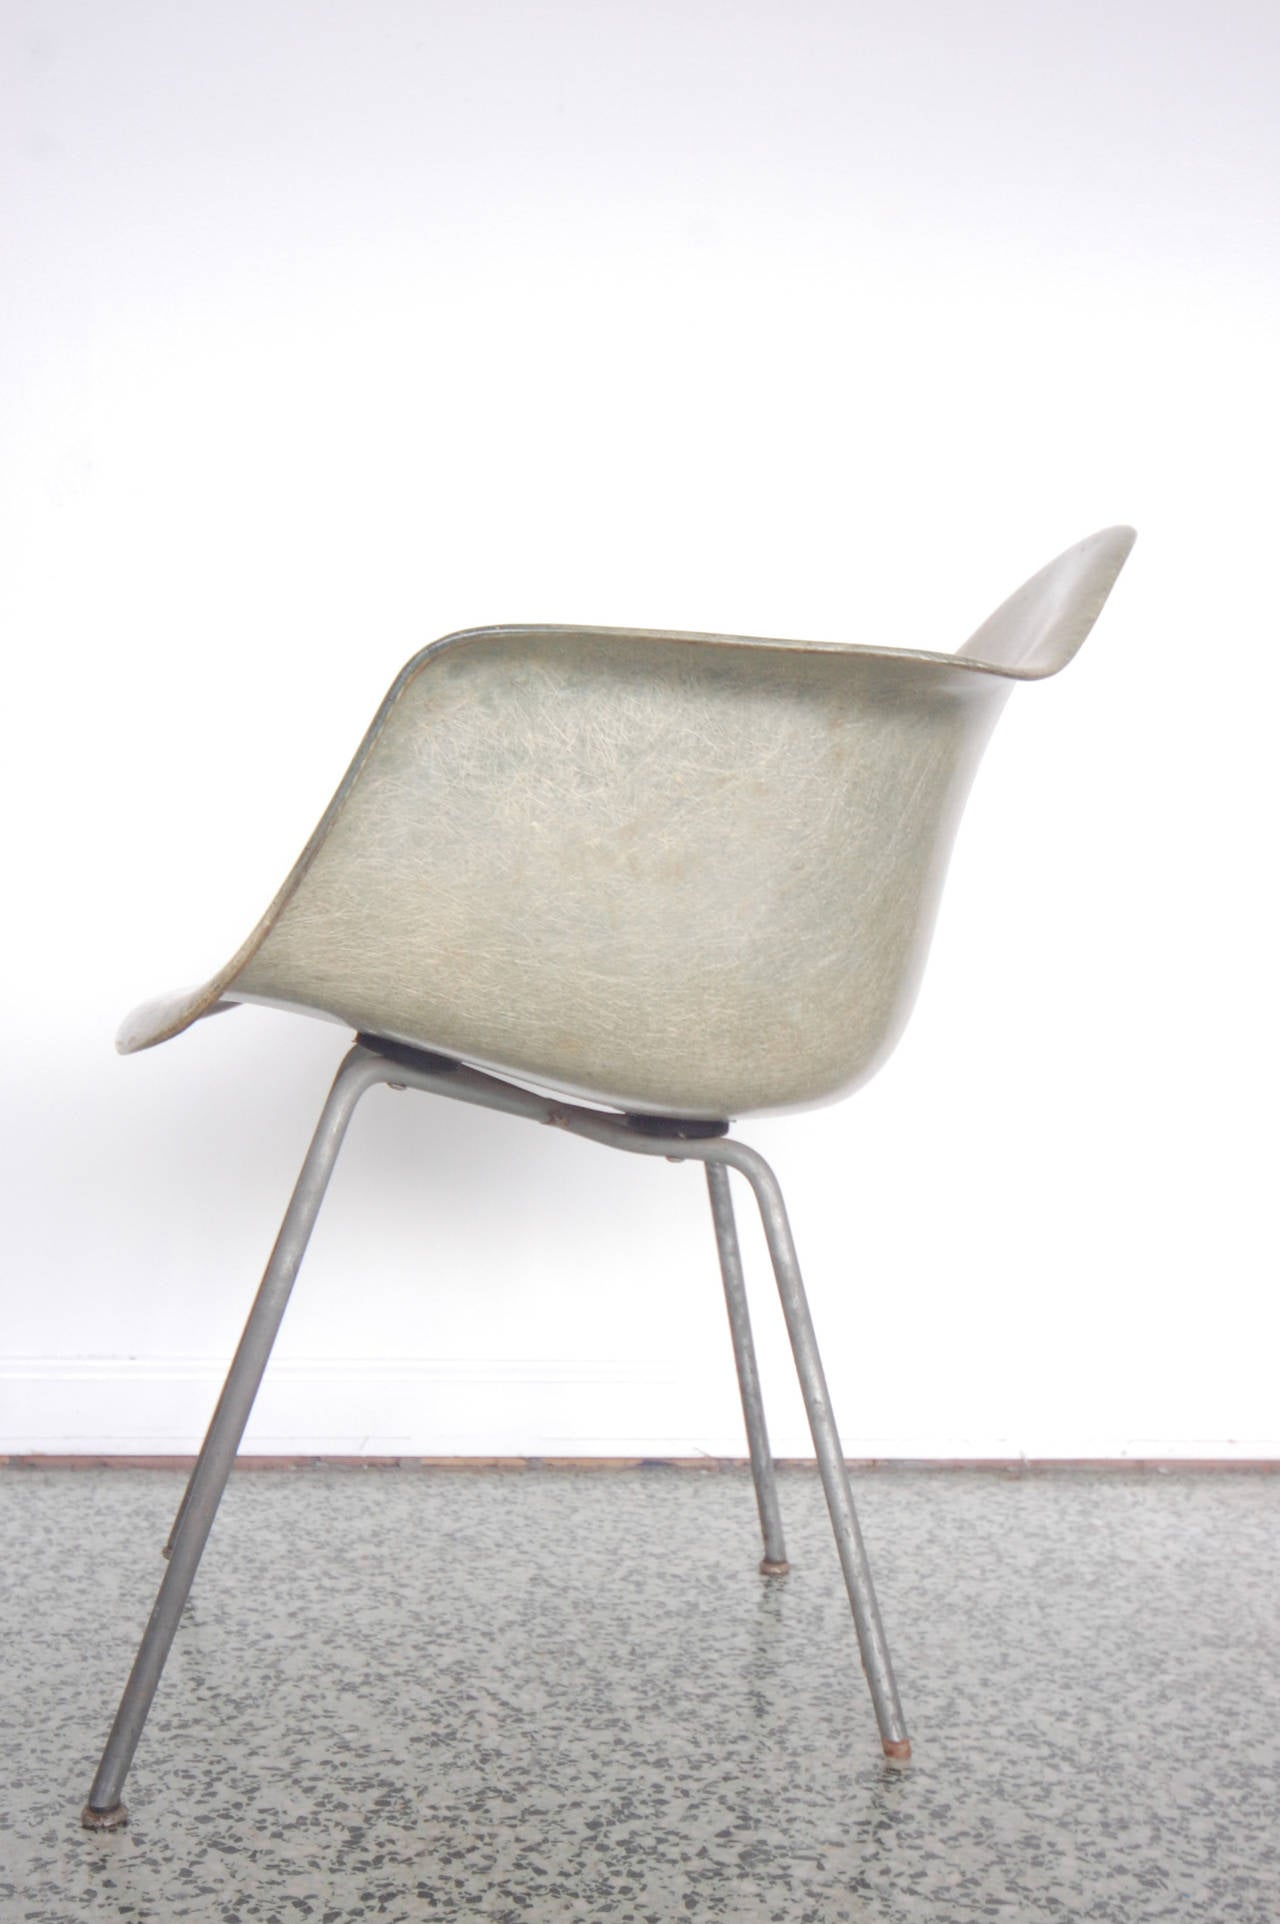 Mid-20th Century Eames SAX Armchair by Zenith Plastics for Herman Miller For Sale